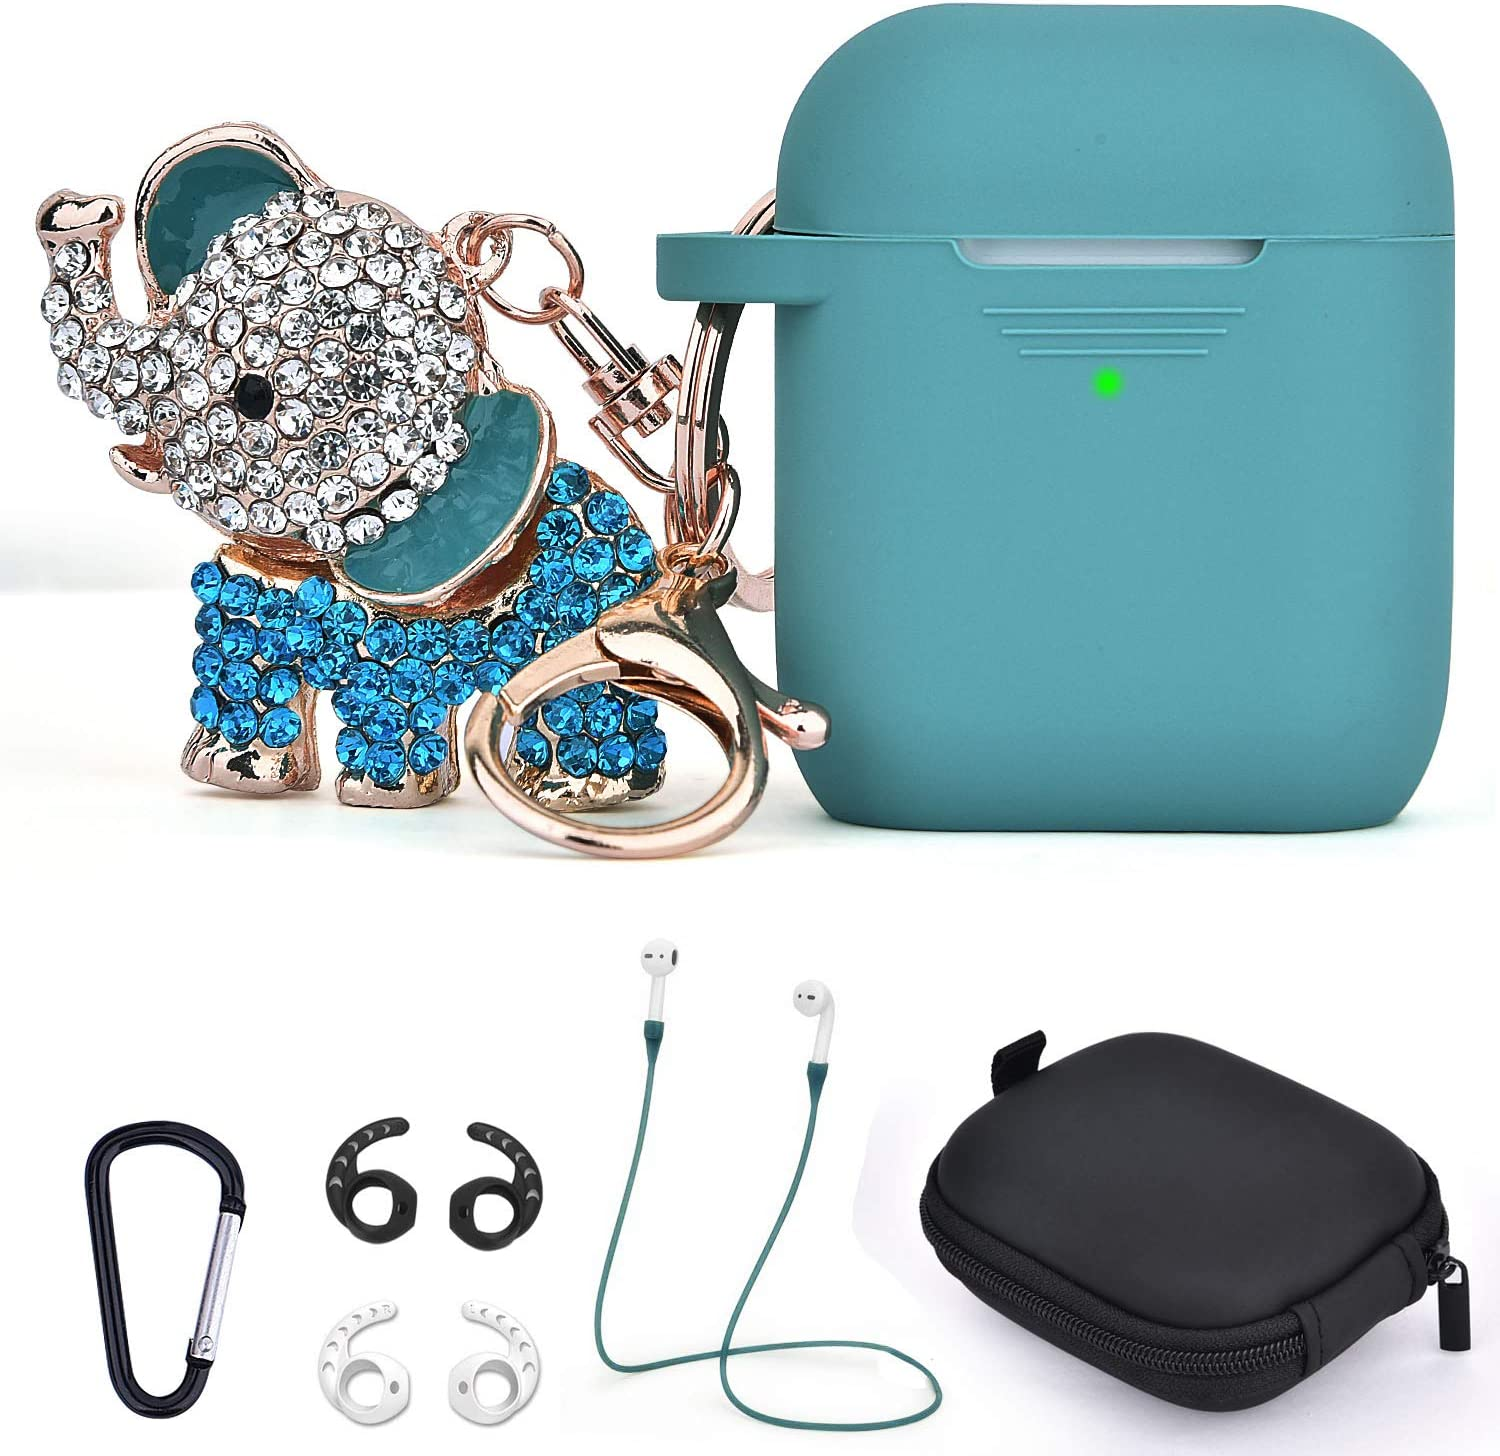 Airpods 1/2 Case Keychain,TOROTOP 7 in 1 Cute Silicone Protective Airpod Cases Cover Accessorie with Bling Elephant Keychain/Strap/Ear Hook/Storage Box Compatible for Apple Airpod 2&1